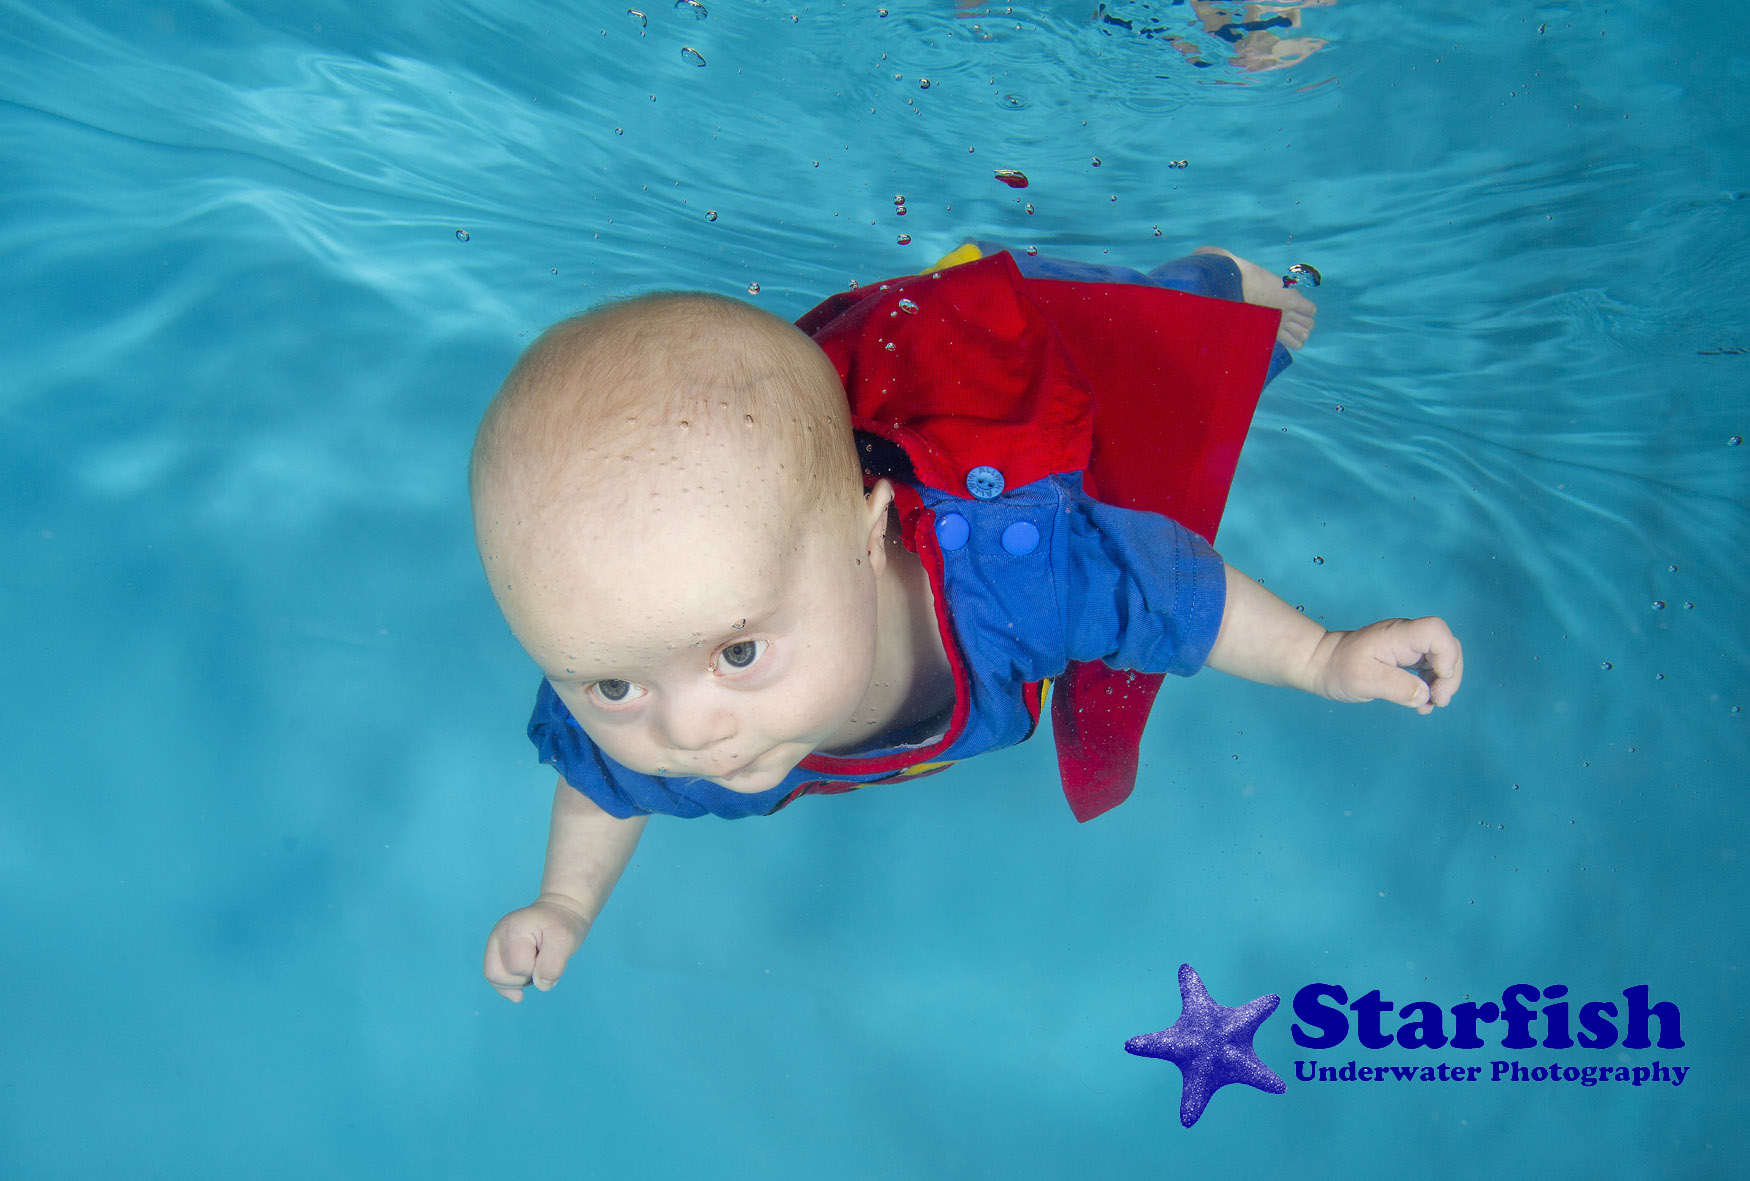 William Jones at 4 months, swimming underwater, two days before going into hospital for open heart surgery. His mum Susan thinks he's a Superman for surviving everything he has been through.William Jones, was born with Down's Syndrome and a hole in his heart.   Baby swimming lessons with Aquatots Swim School, at a pool in Cirencester, have dramatically improved his muscle development and overall development. The strength he has built up through swimming prepared him for the open heart surgery to repair the hole in his heart and also helped him cope with complications following surgery.Photo by Lucy Ray/Starfish Underwater Photography